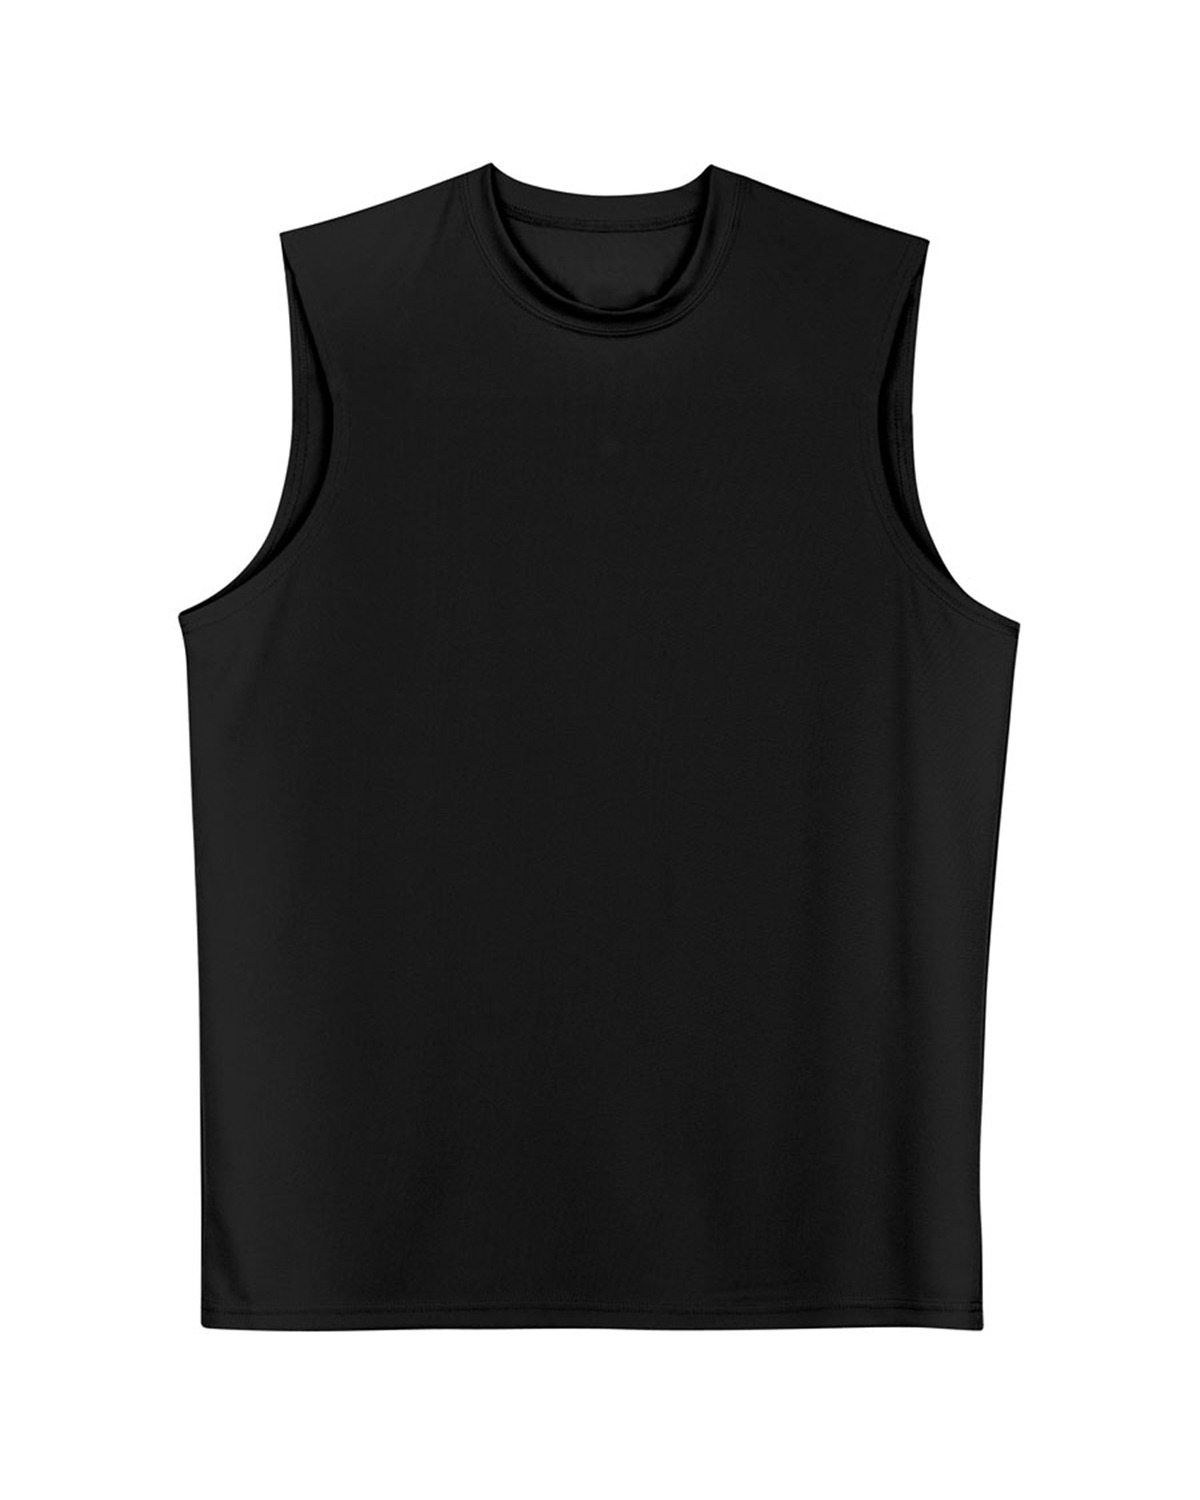 A4 N2295 - Adult Cooling Performance Muscle Tee